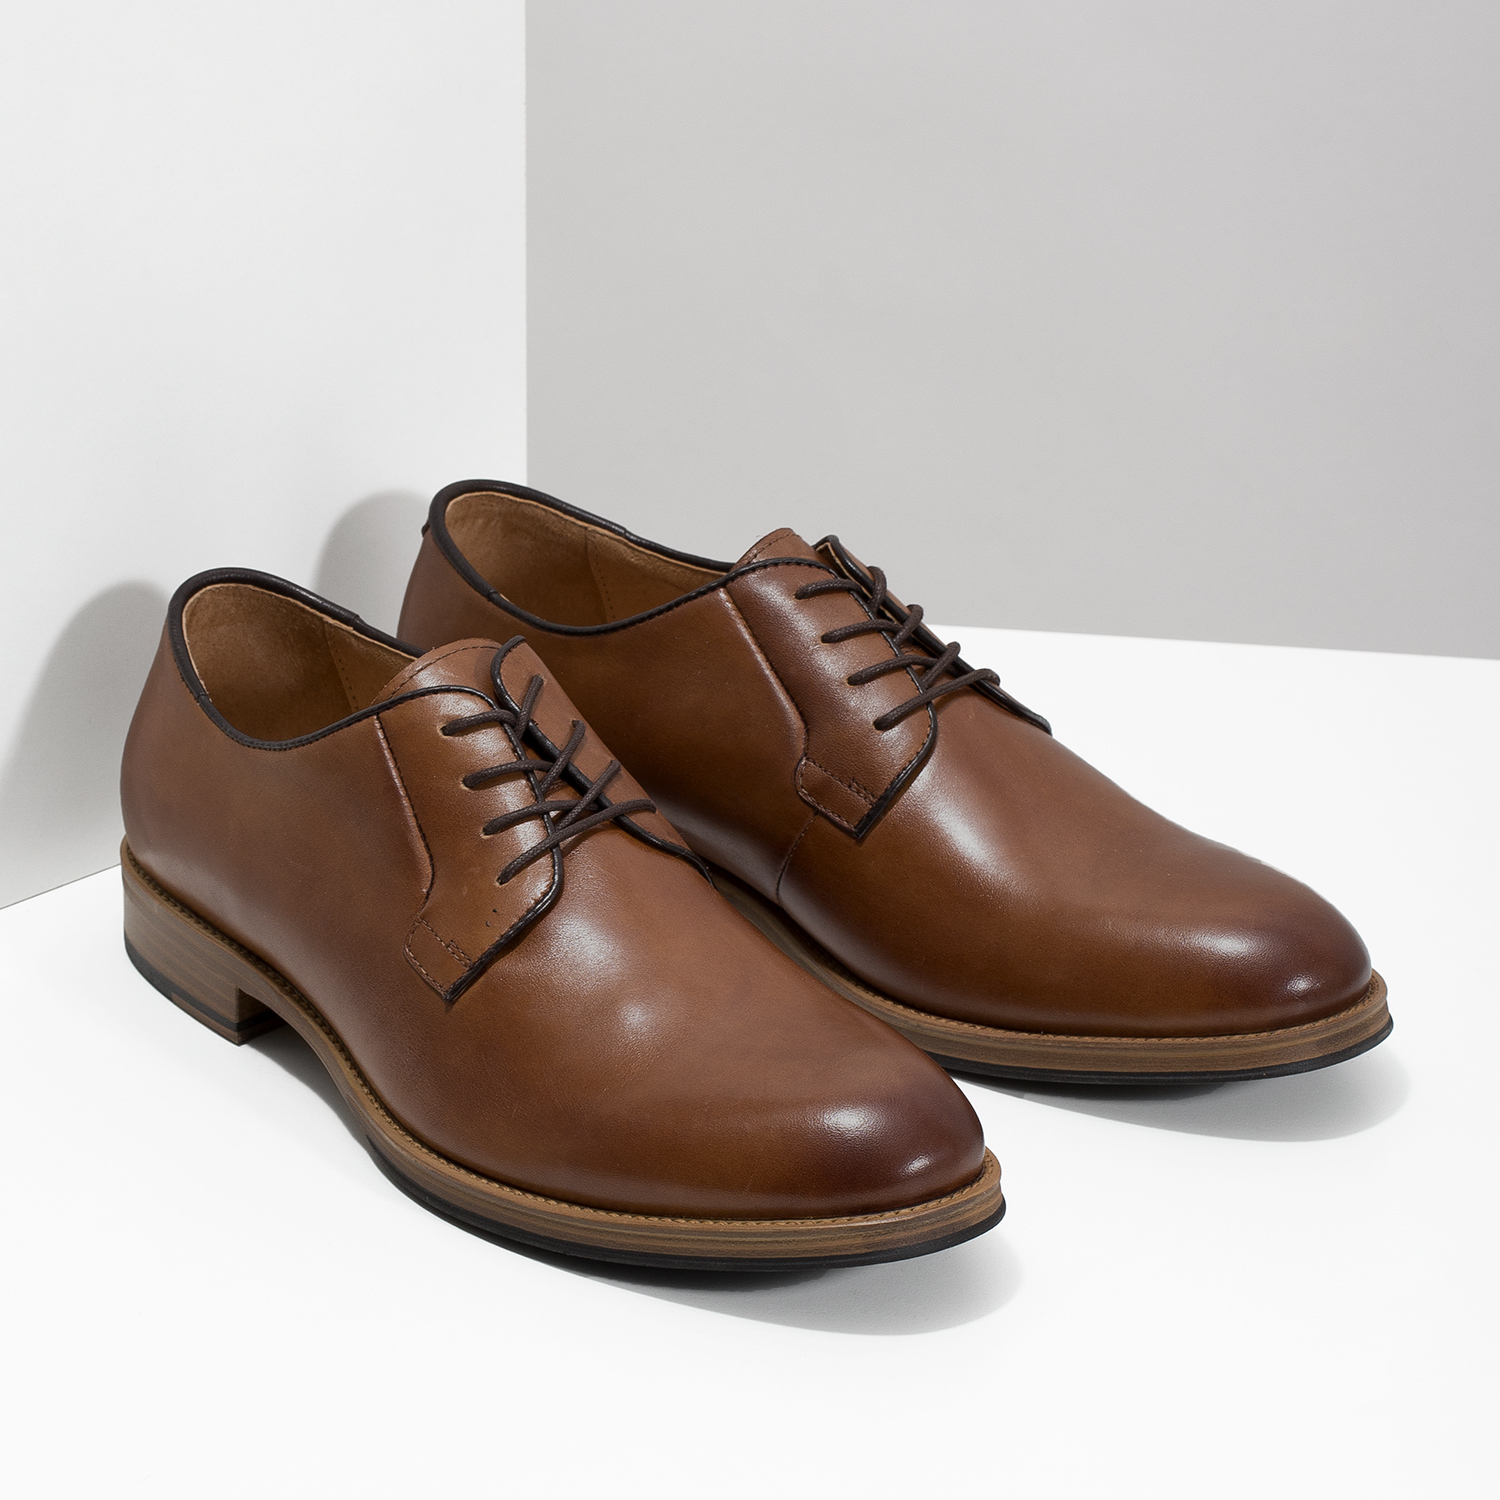 Bata Men's thick-soled leather shoes